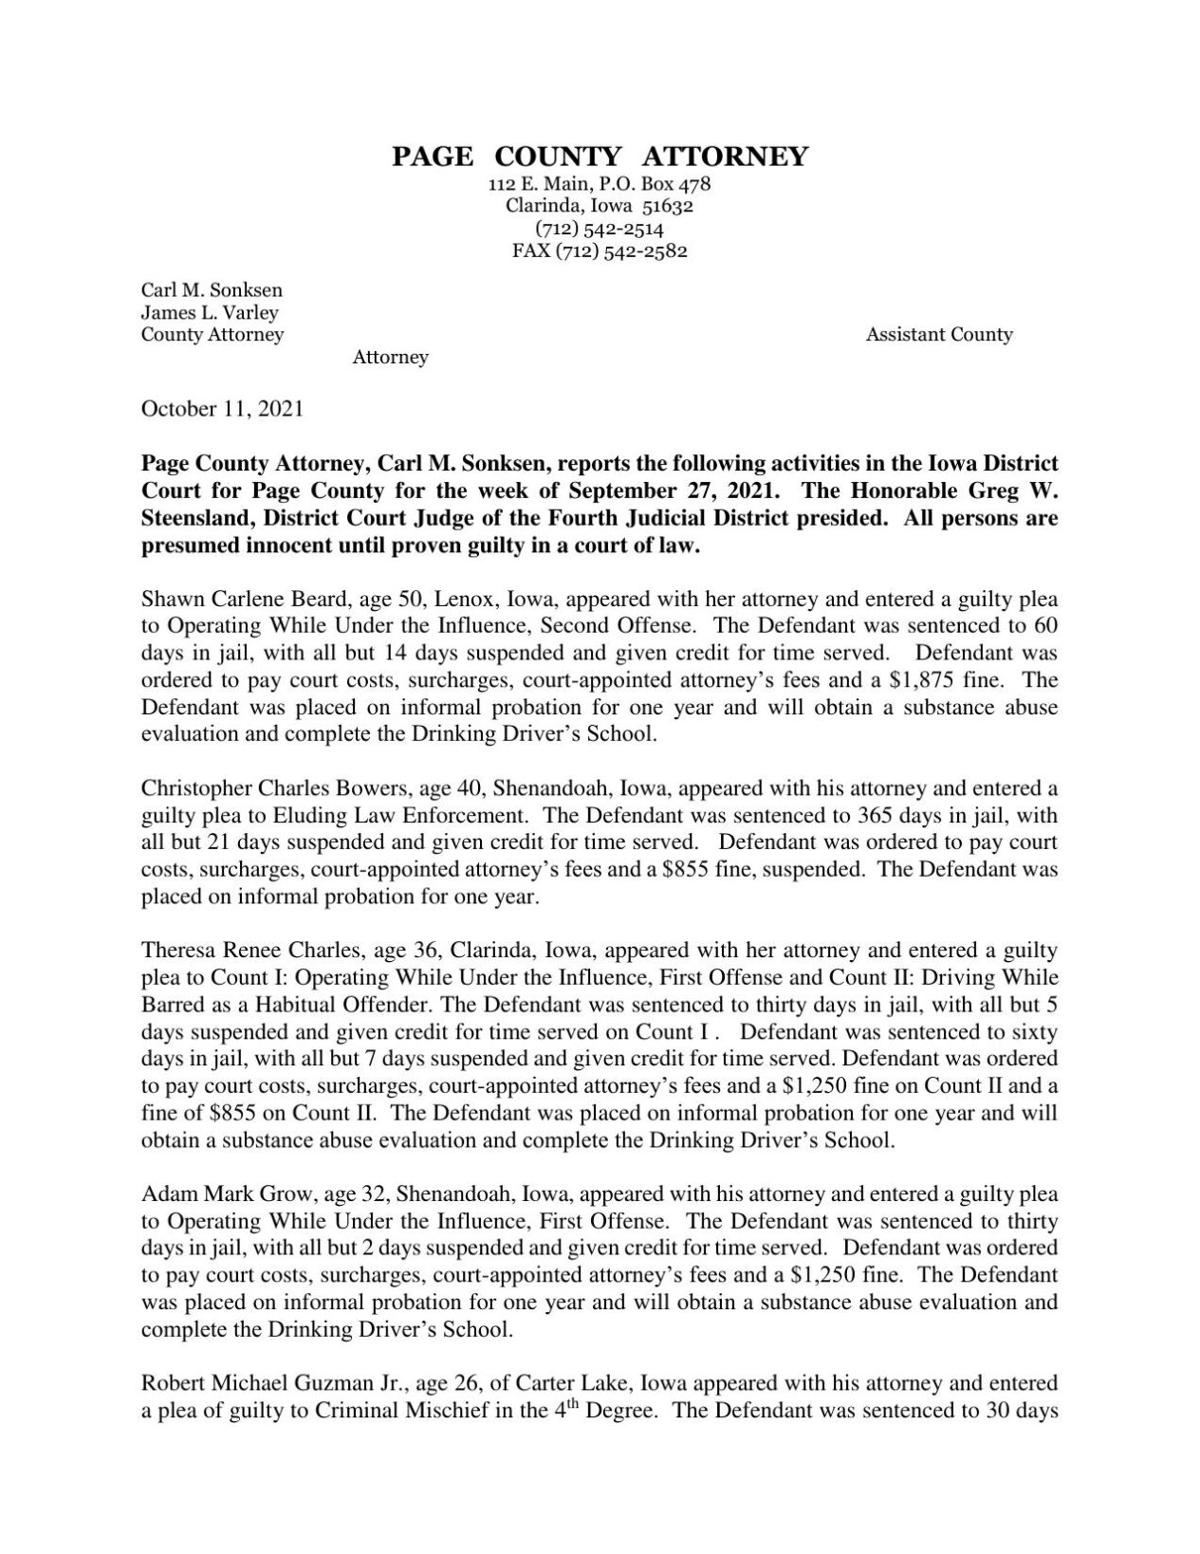 Page County Attorney's Report